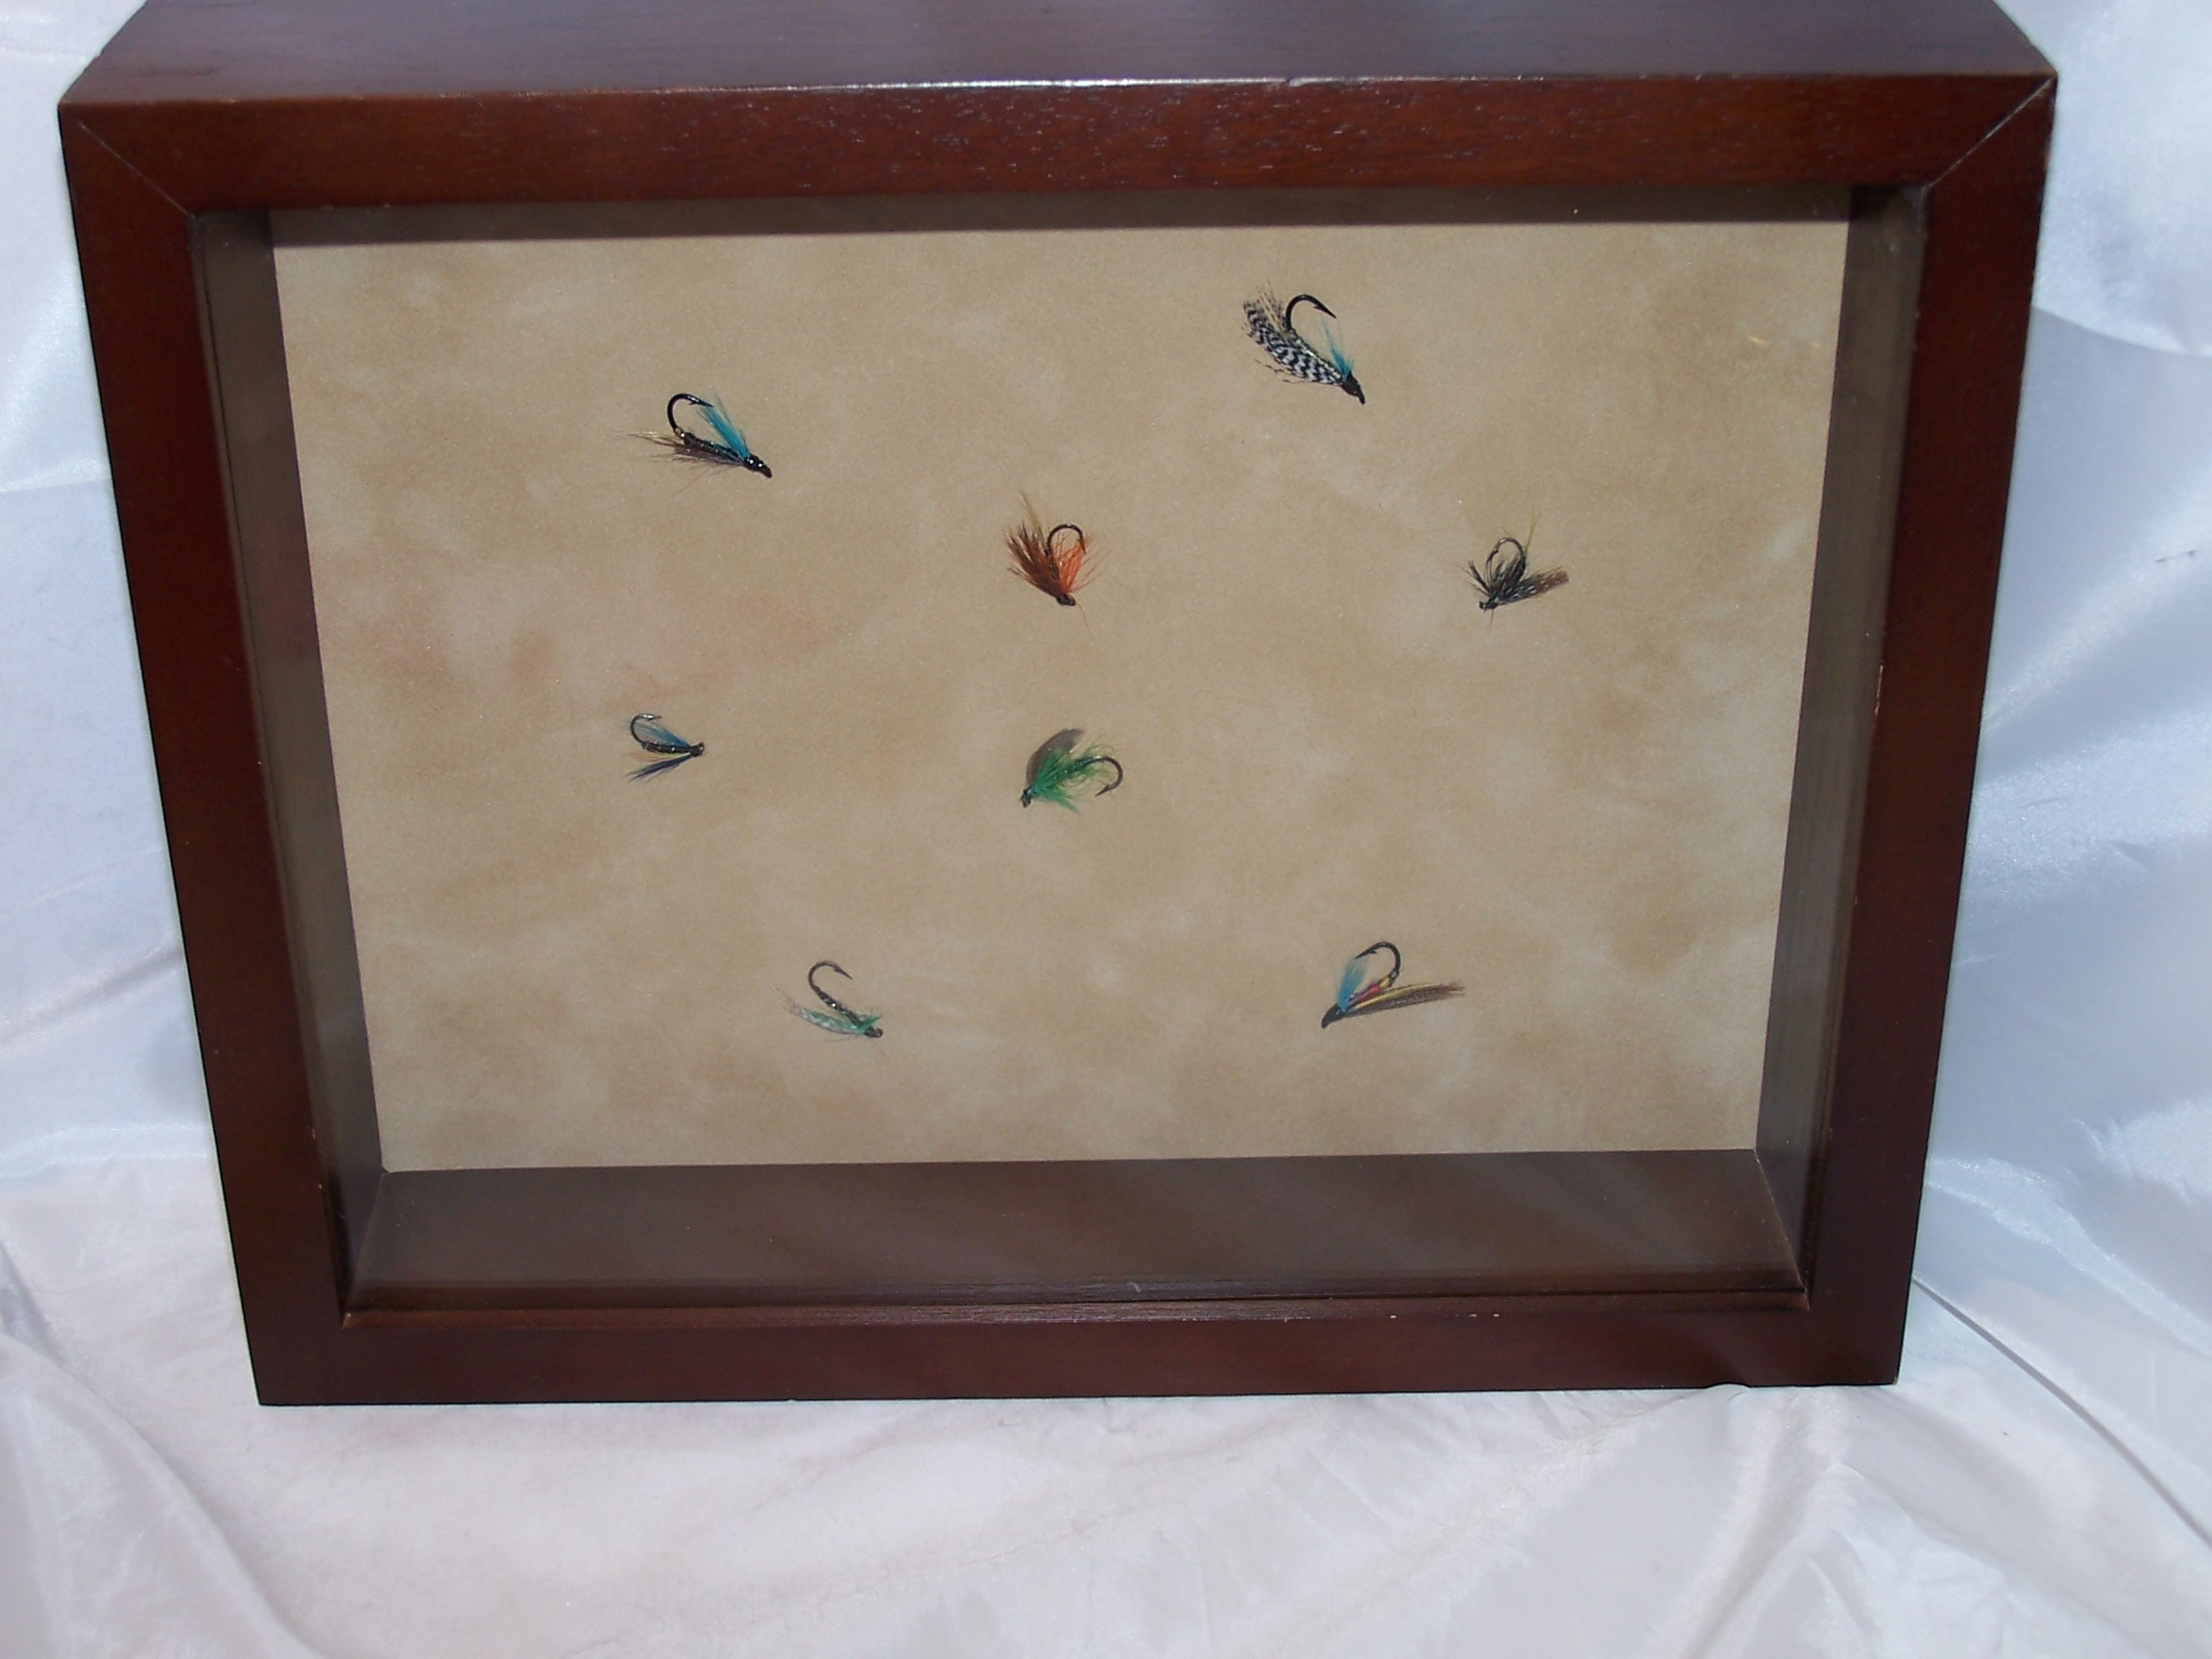 Image 1 of Fly Fishing Lures in Display Frame